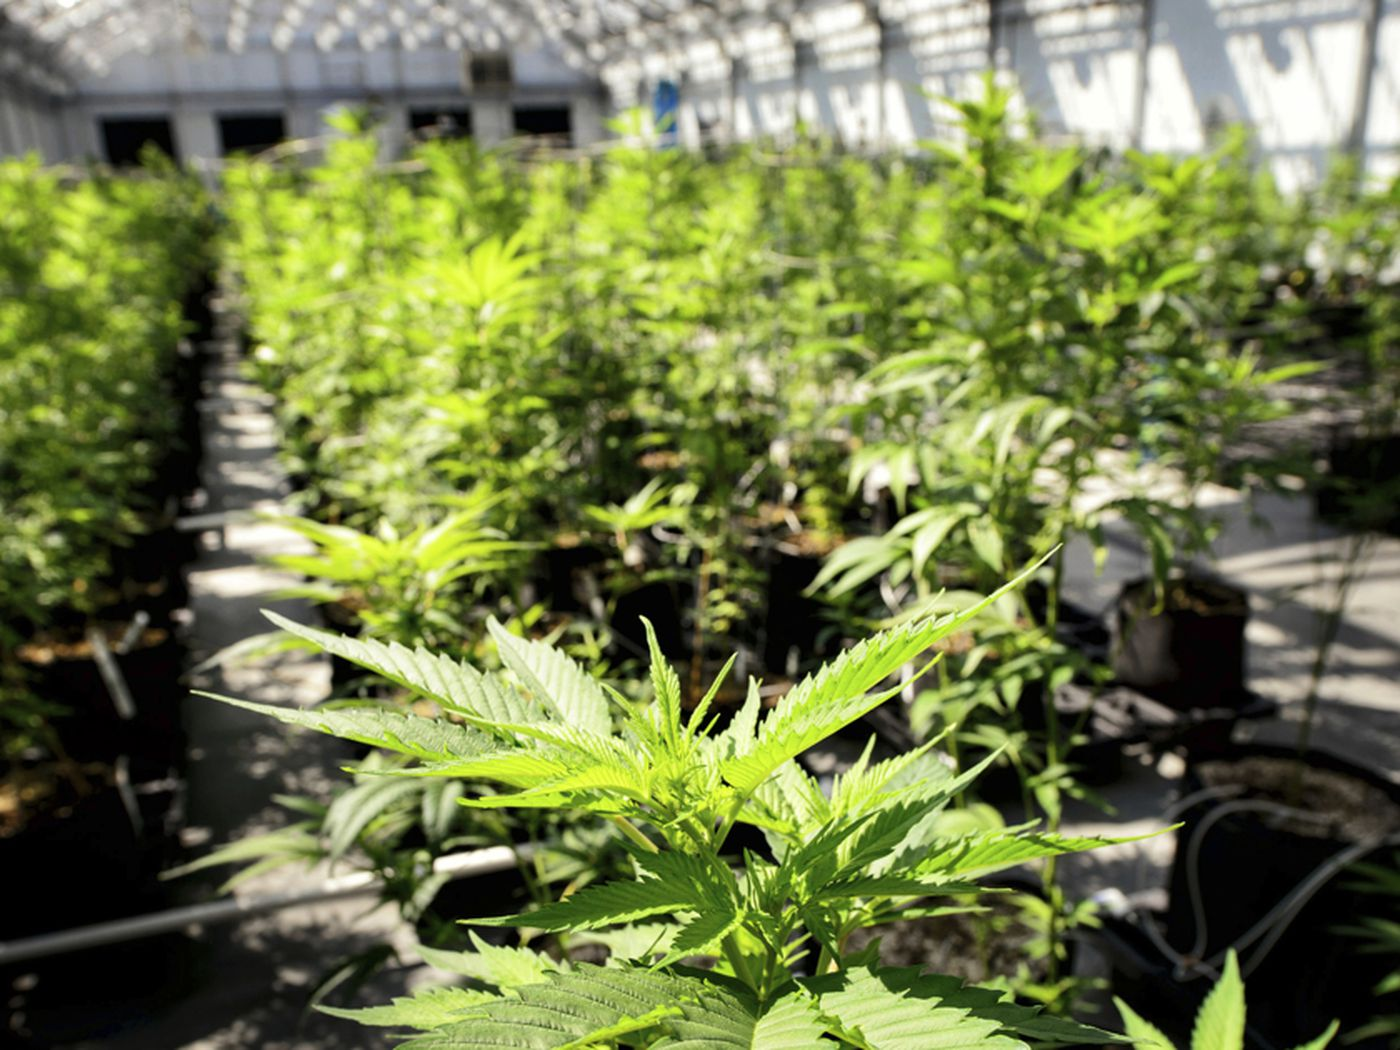 Legal recreational pot headed to approval in West Wendover